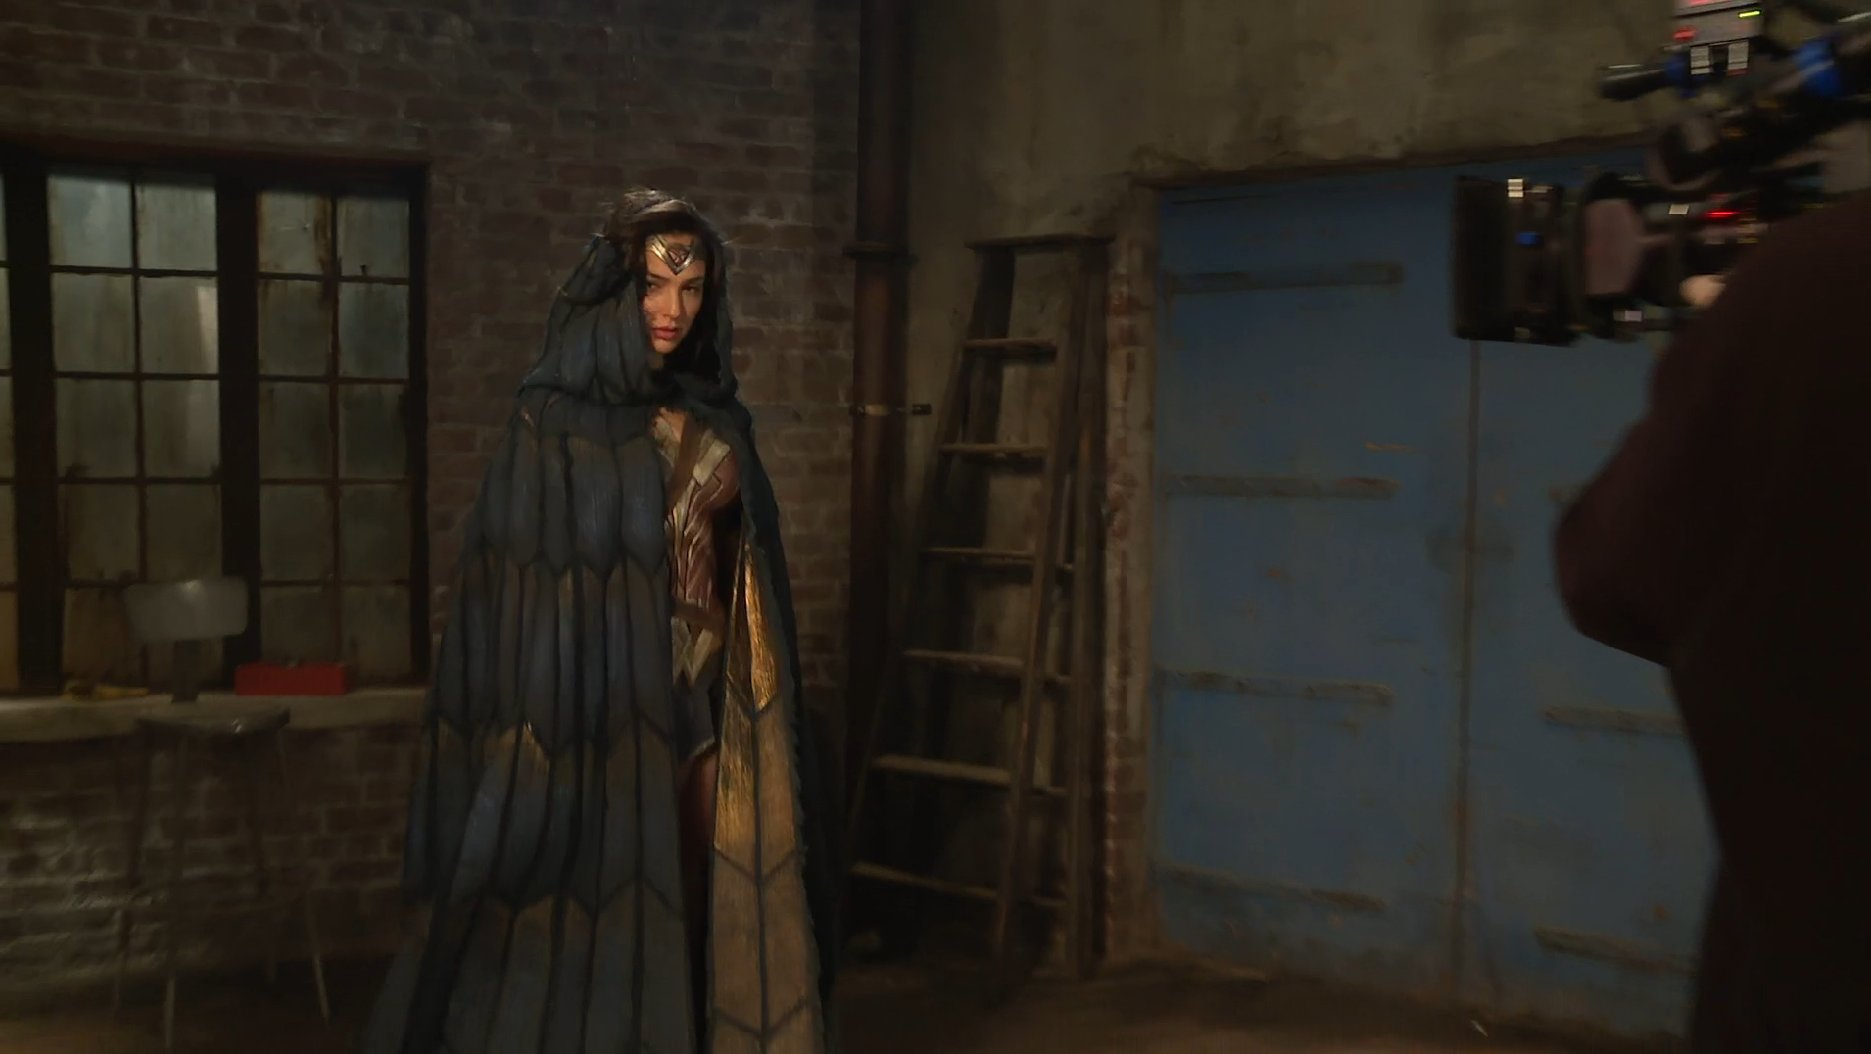 New Wonder Woman Photos Have Gal Gadot In Full Costume